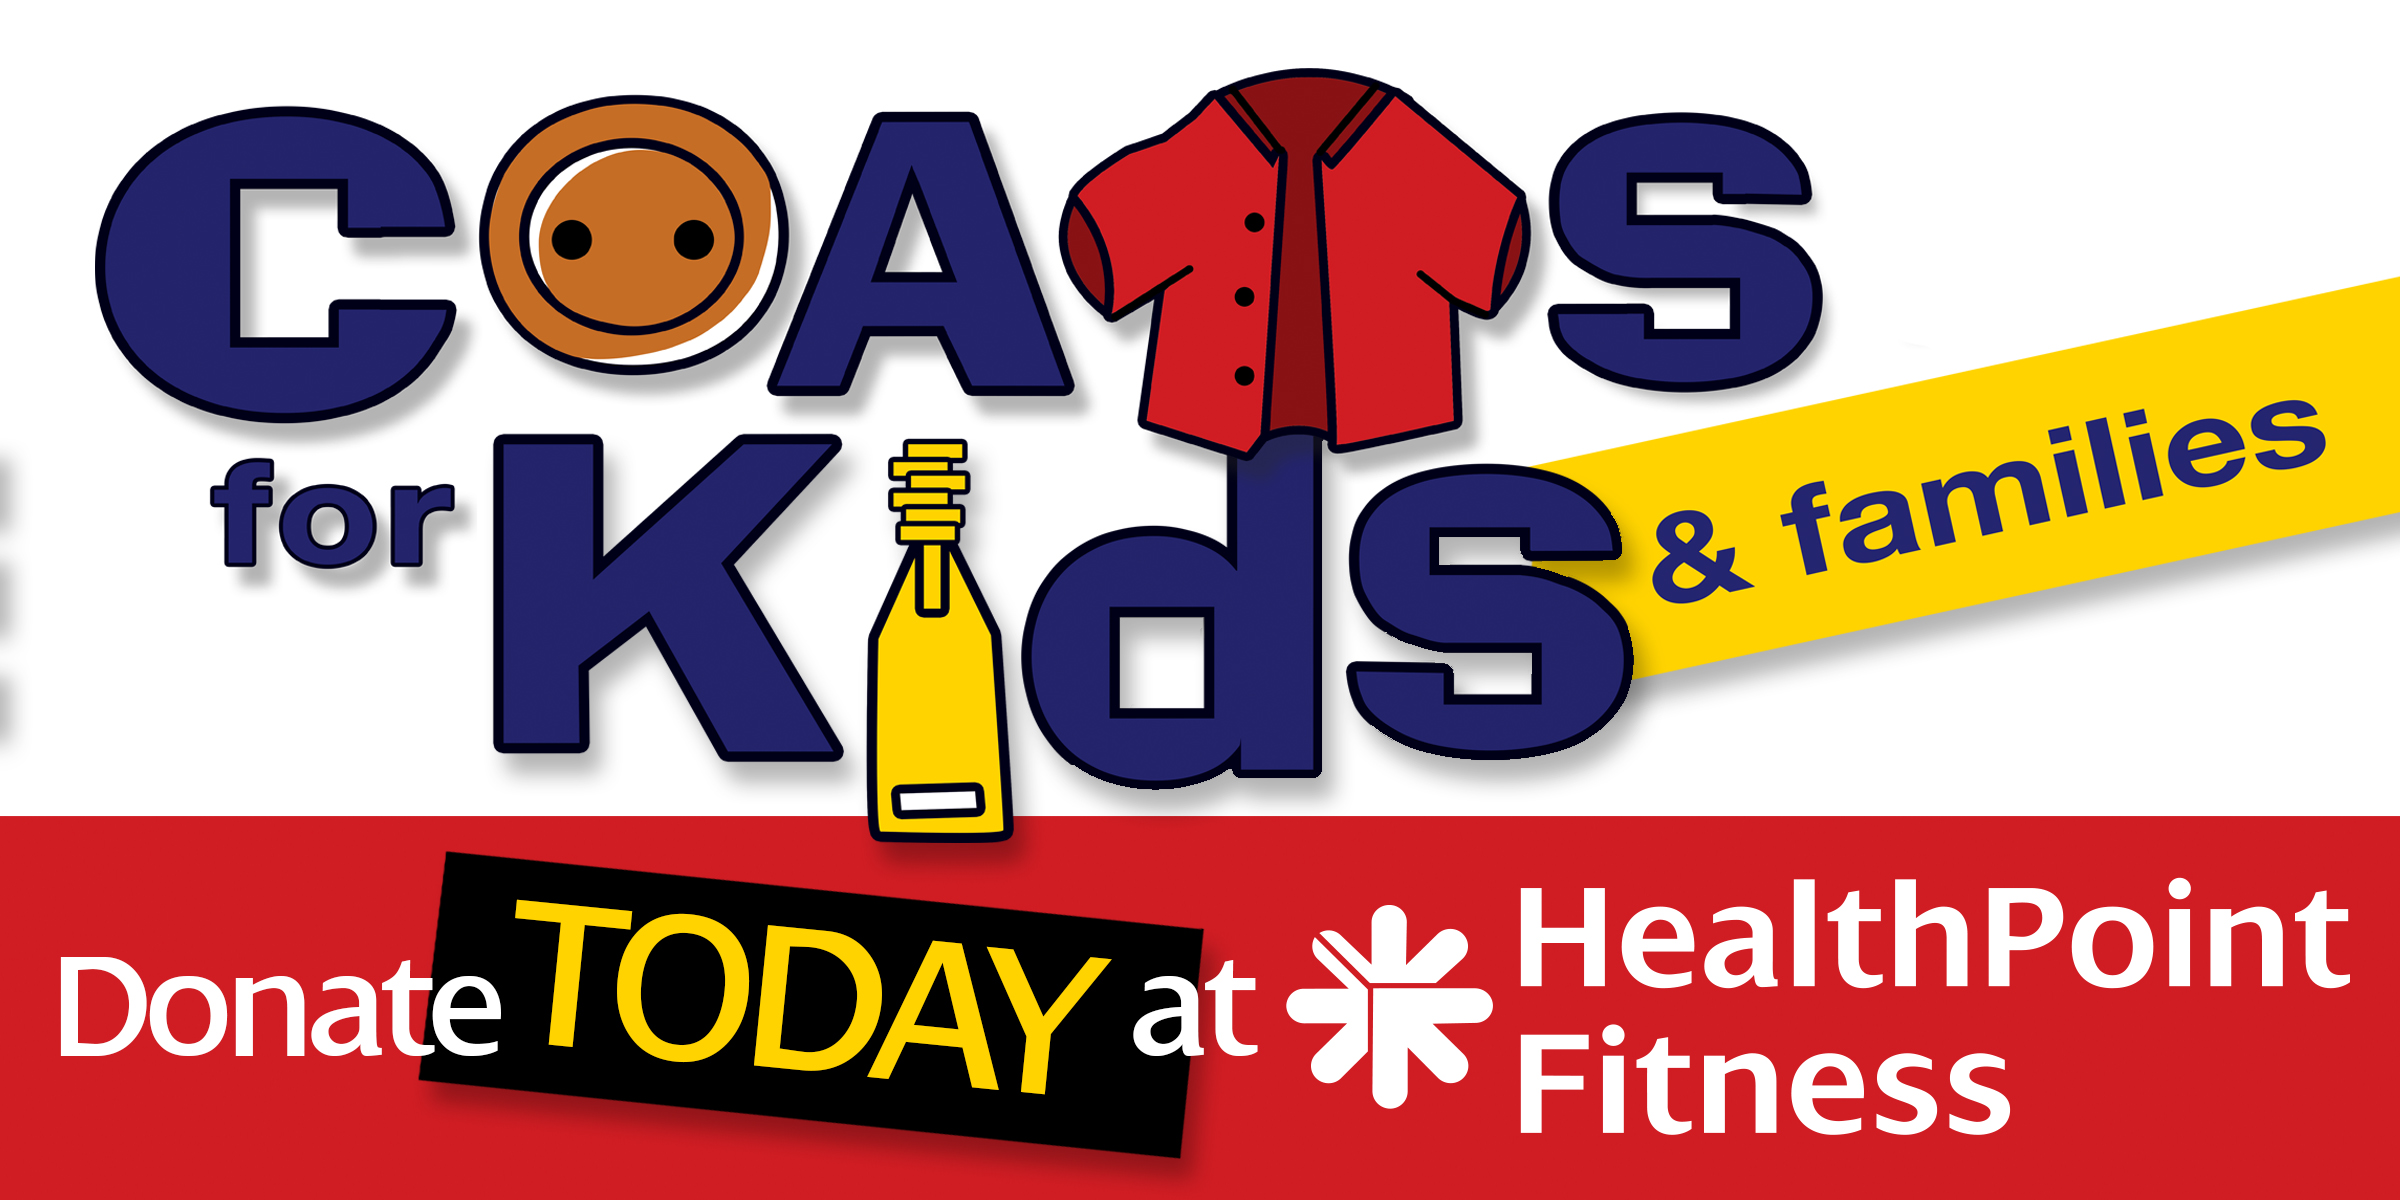 SEhealth_BB_Coats4Kids_Today